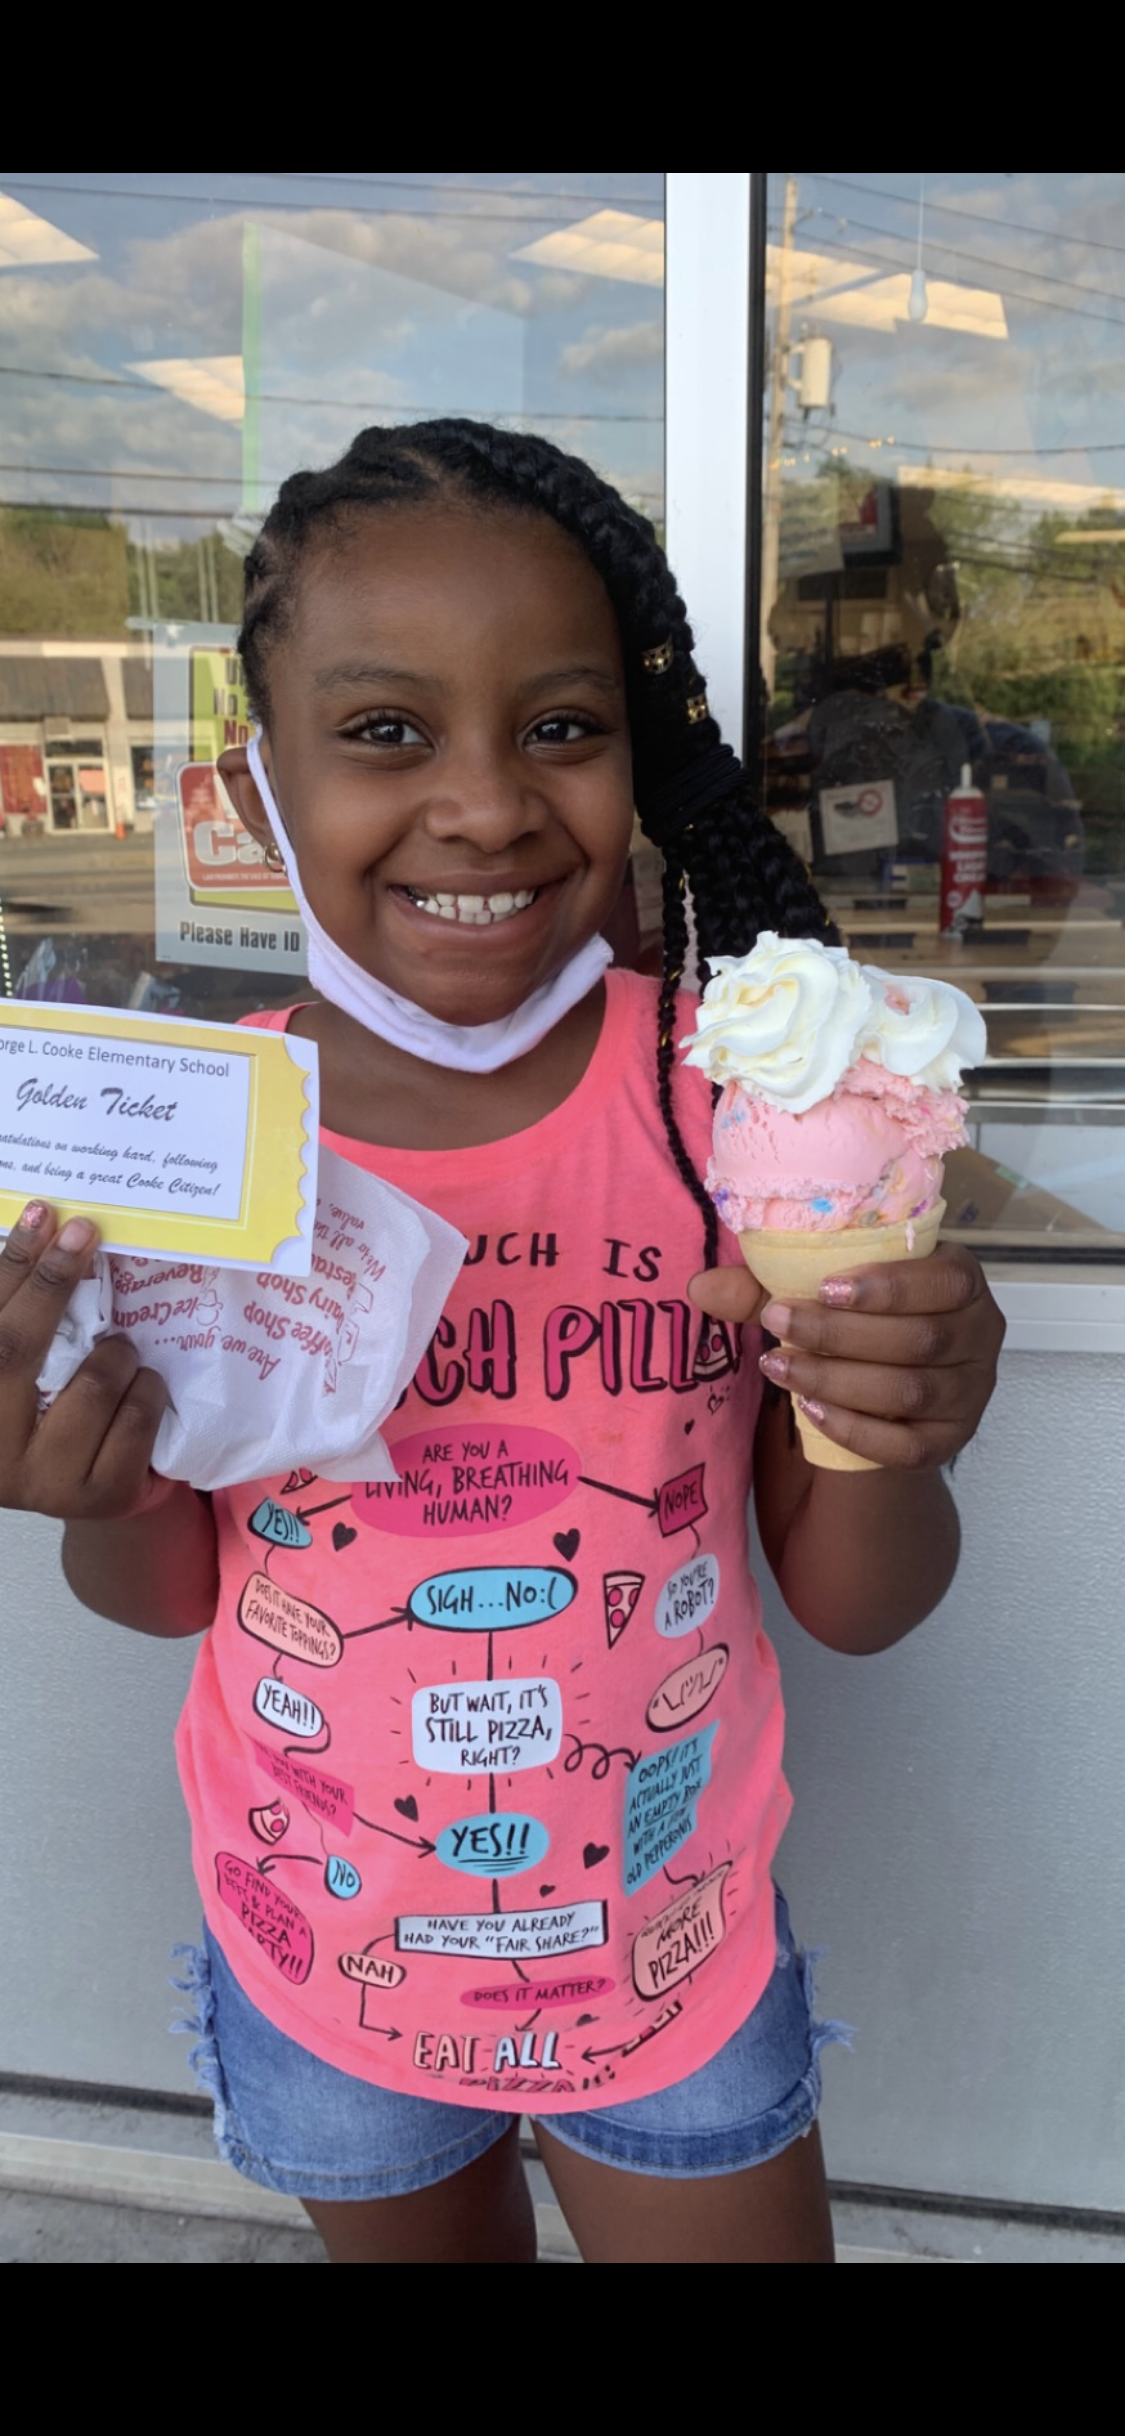 Laday, wearing a pink shirt is holding up an ice cream cone and smiling.